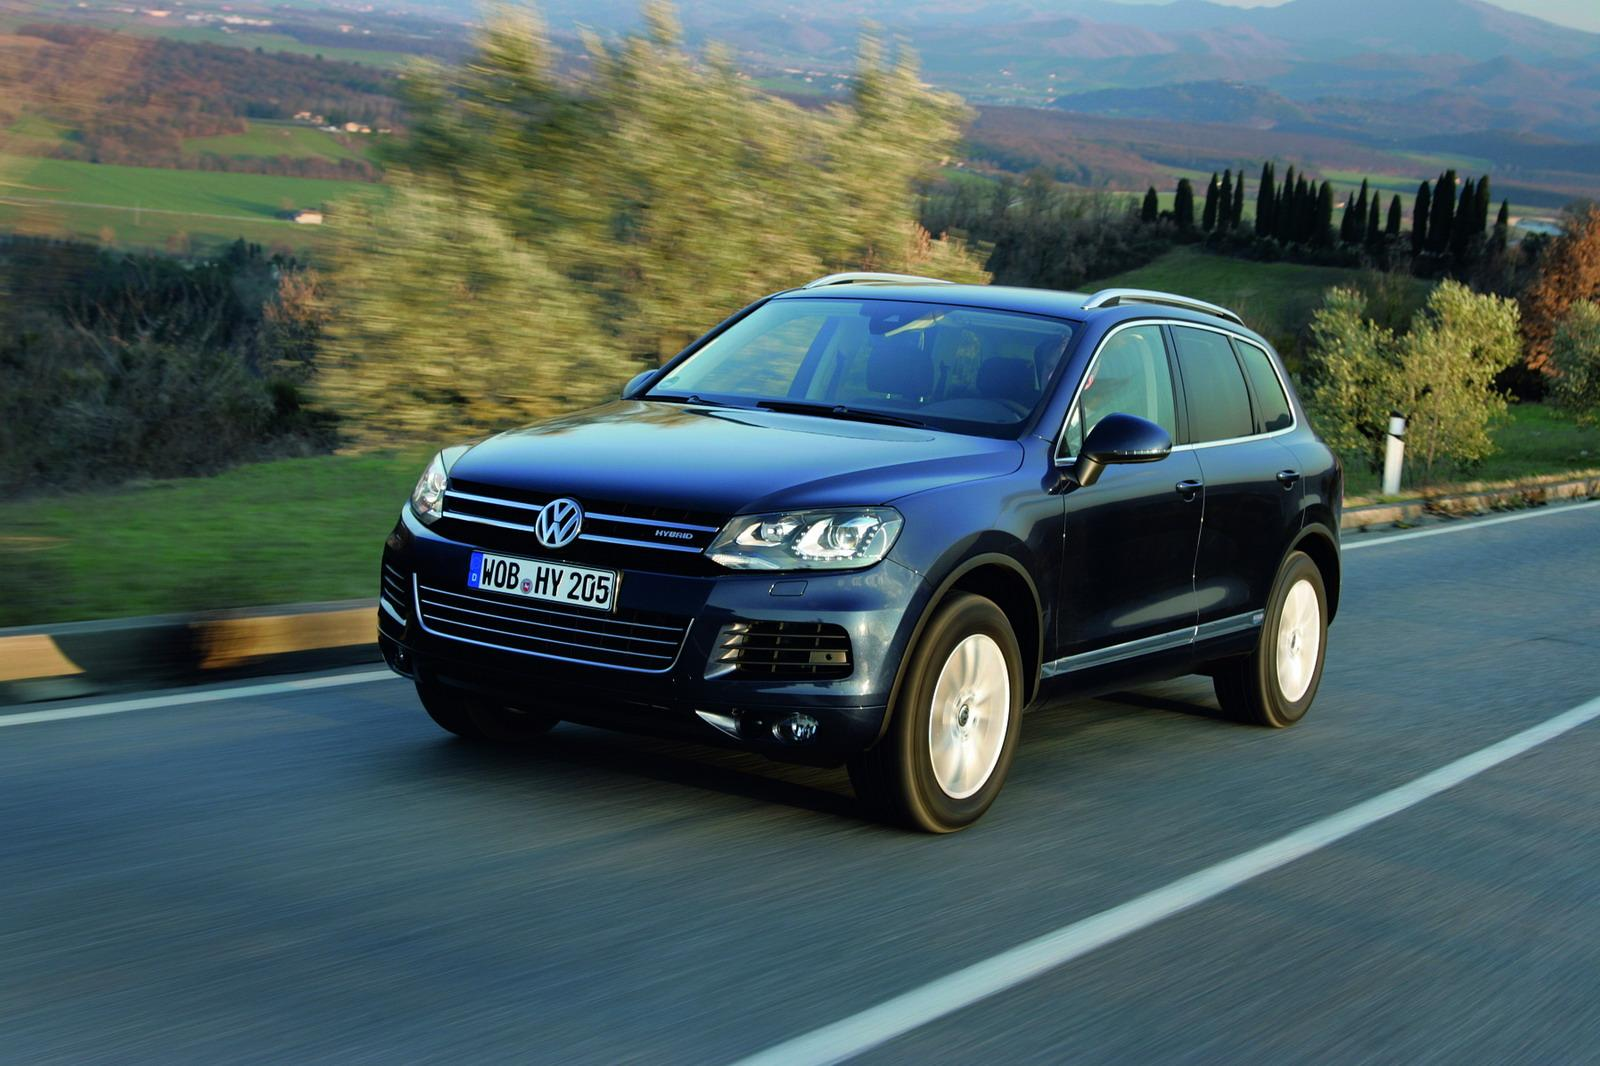 2011 volkswagen touareg hybrid top speed. Black Bedroom Furniture Sets. Home Design Ideas